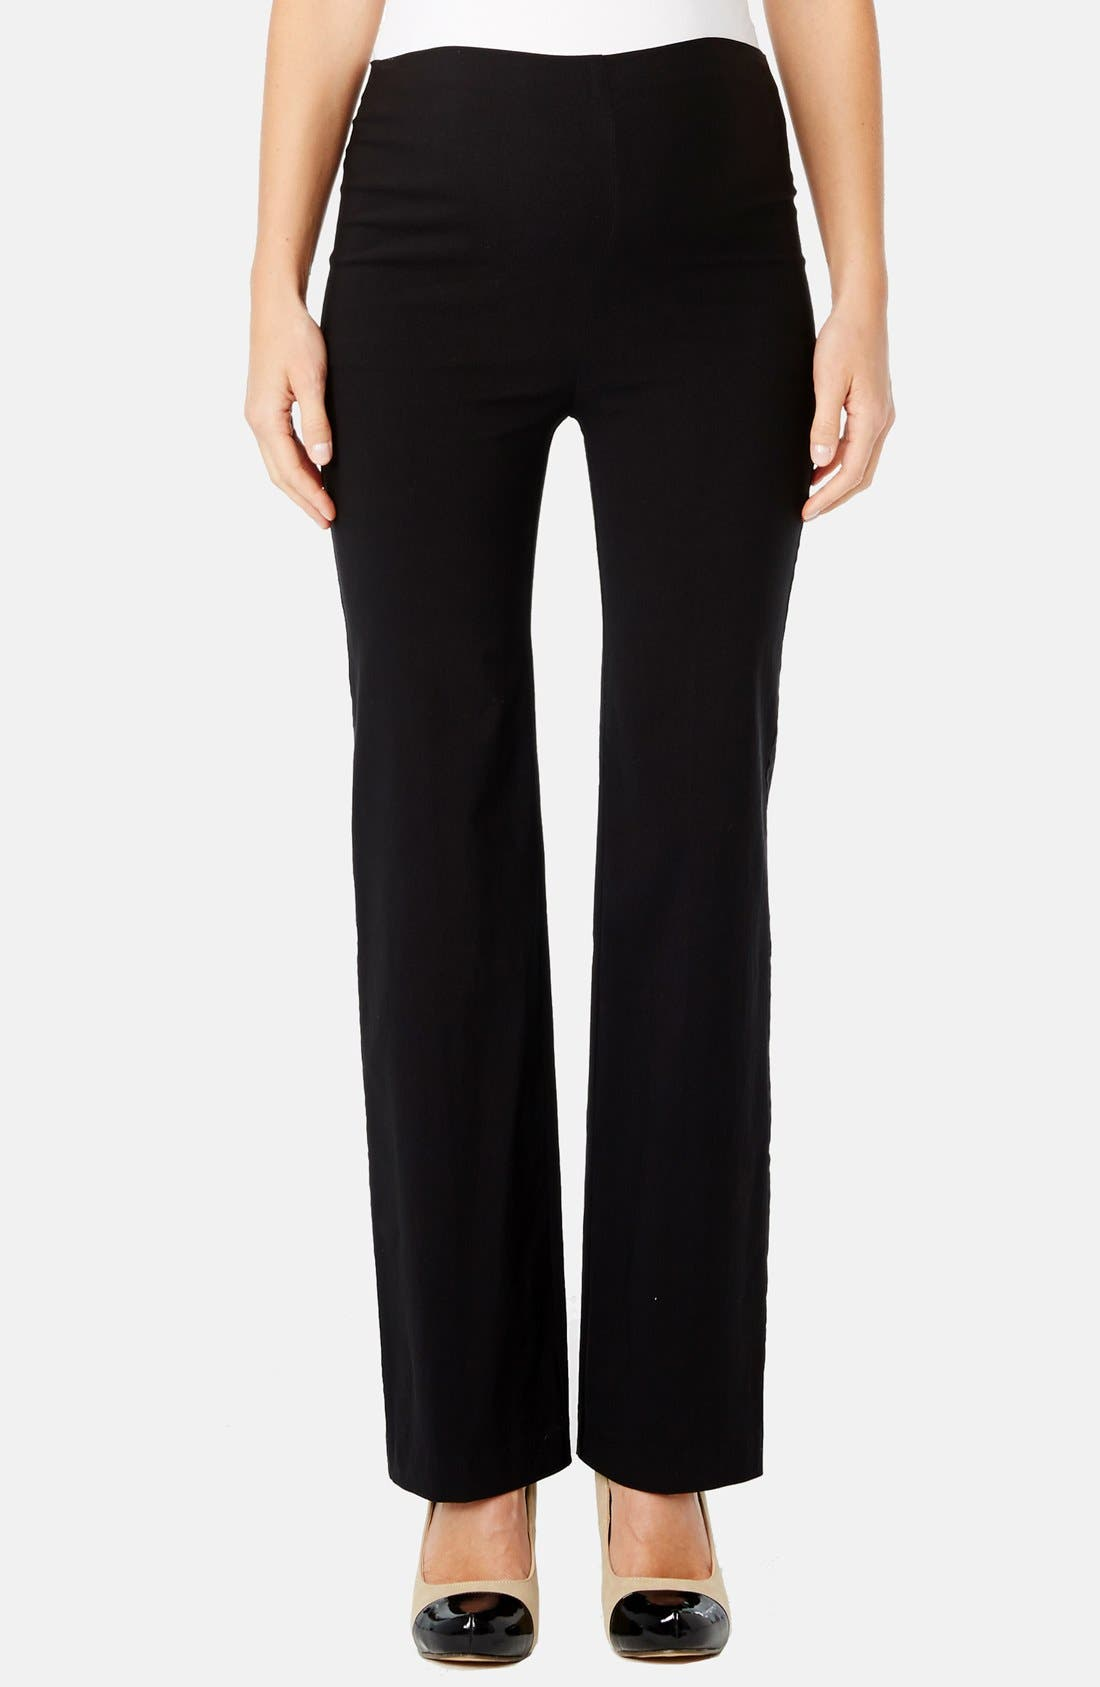 Alternate Image 1 Selected - Rosie Pope 'Pret' Maternity Trousers